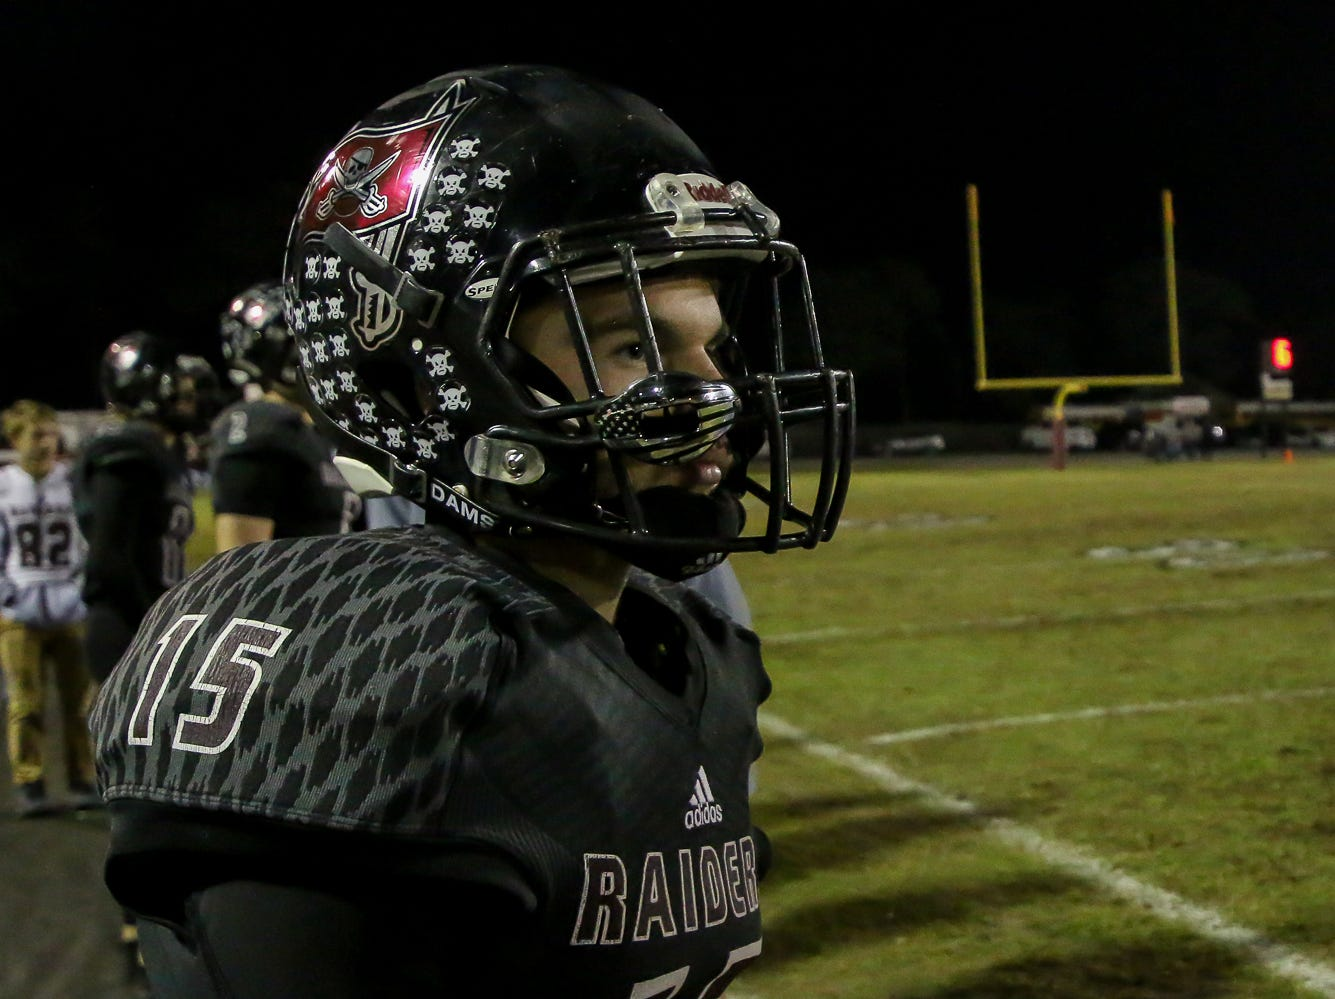 Navarre's Zach Simpson (15) watches a play against Escambia in the Region 1-6A Semifinal game at Navarre High School on Friday, November 16, 2018.